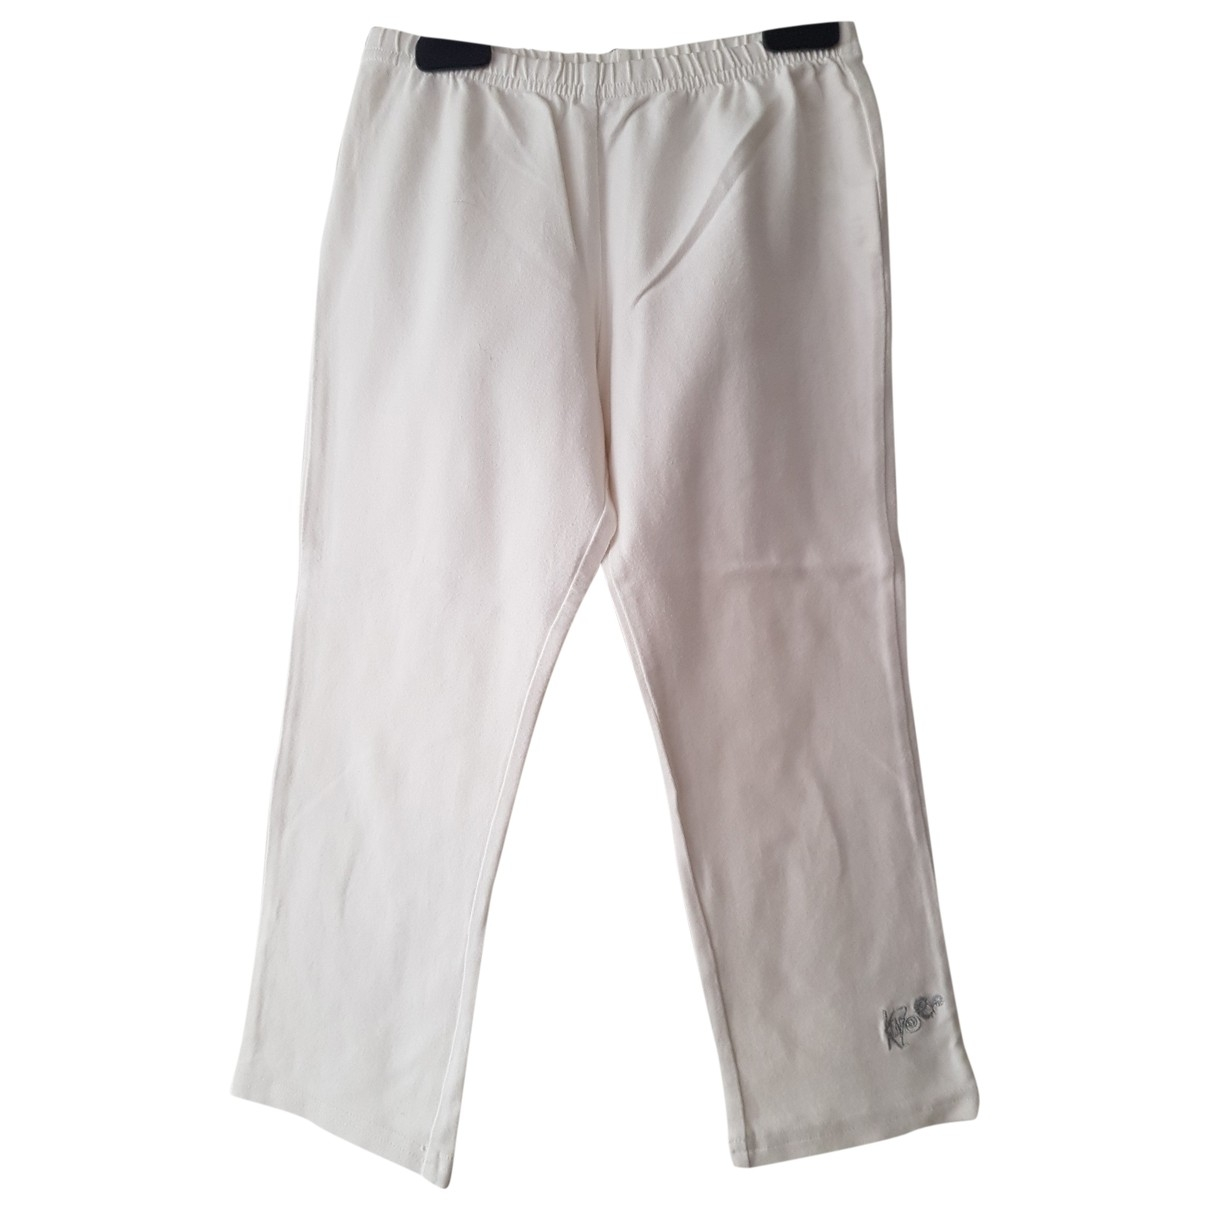 Kenzo \N White Cotton Shorts for Kids 10 years - up to 142cm FR